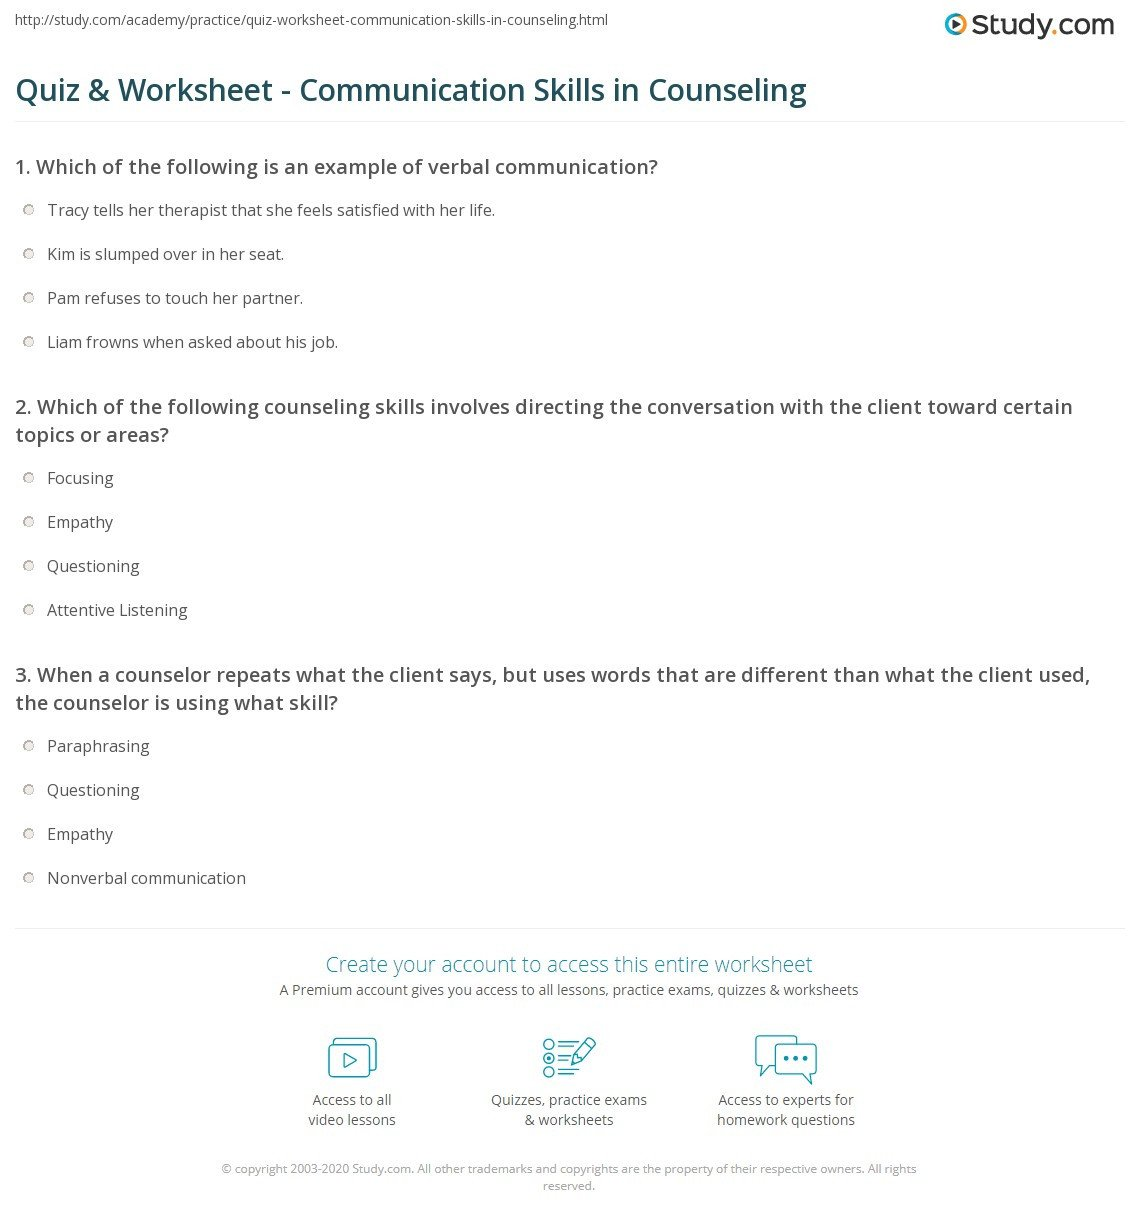 Family therapy Communication Worksheets Quiz & Worksheet Munication Skills In Counseling